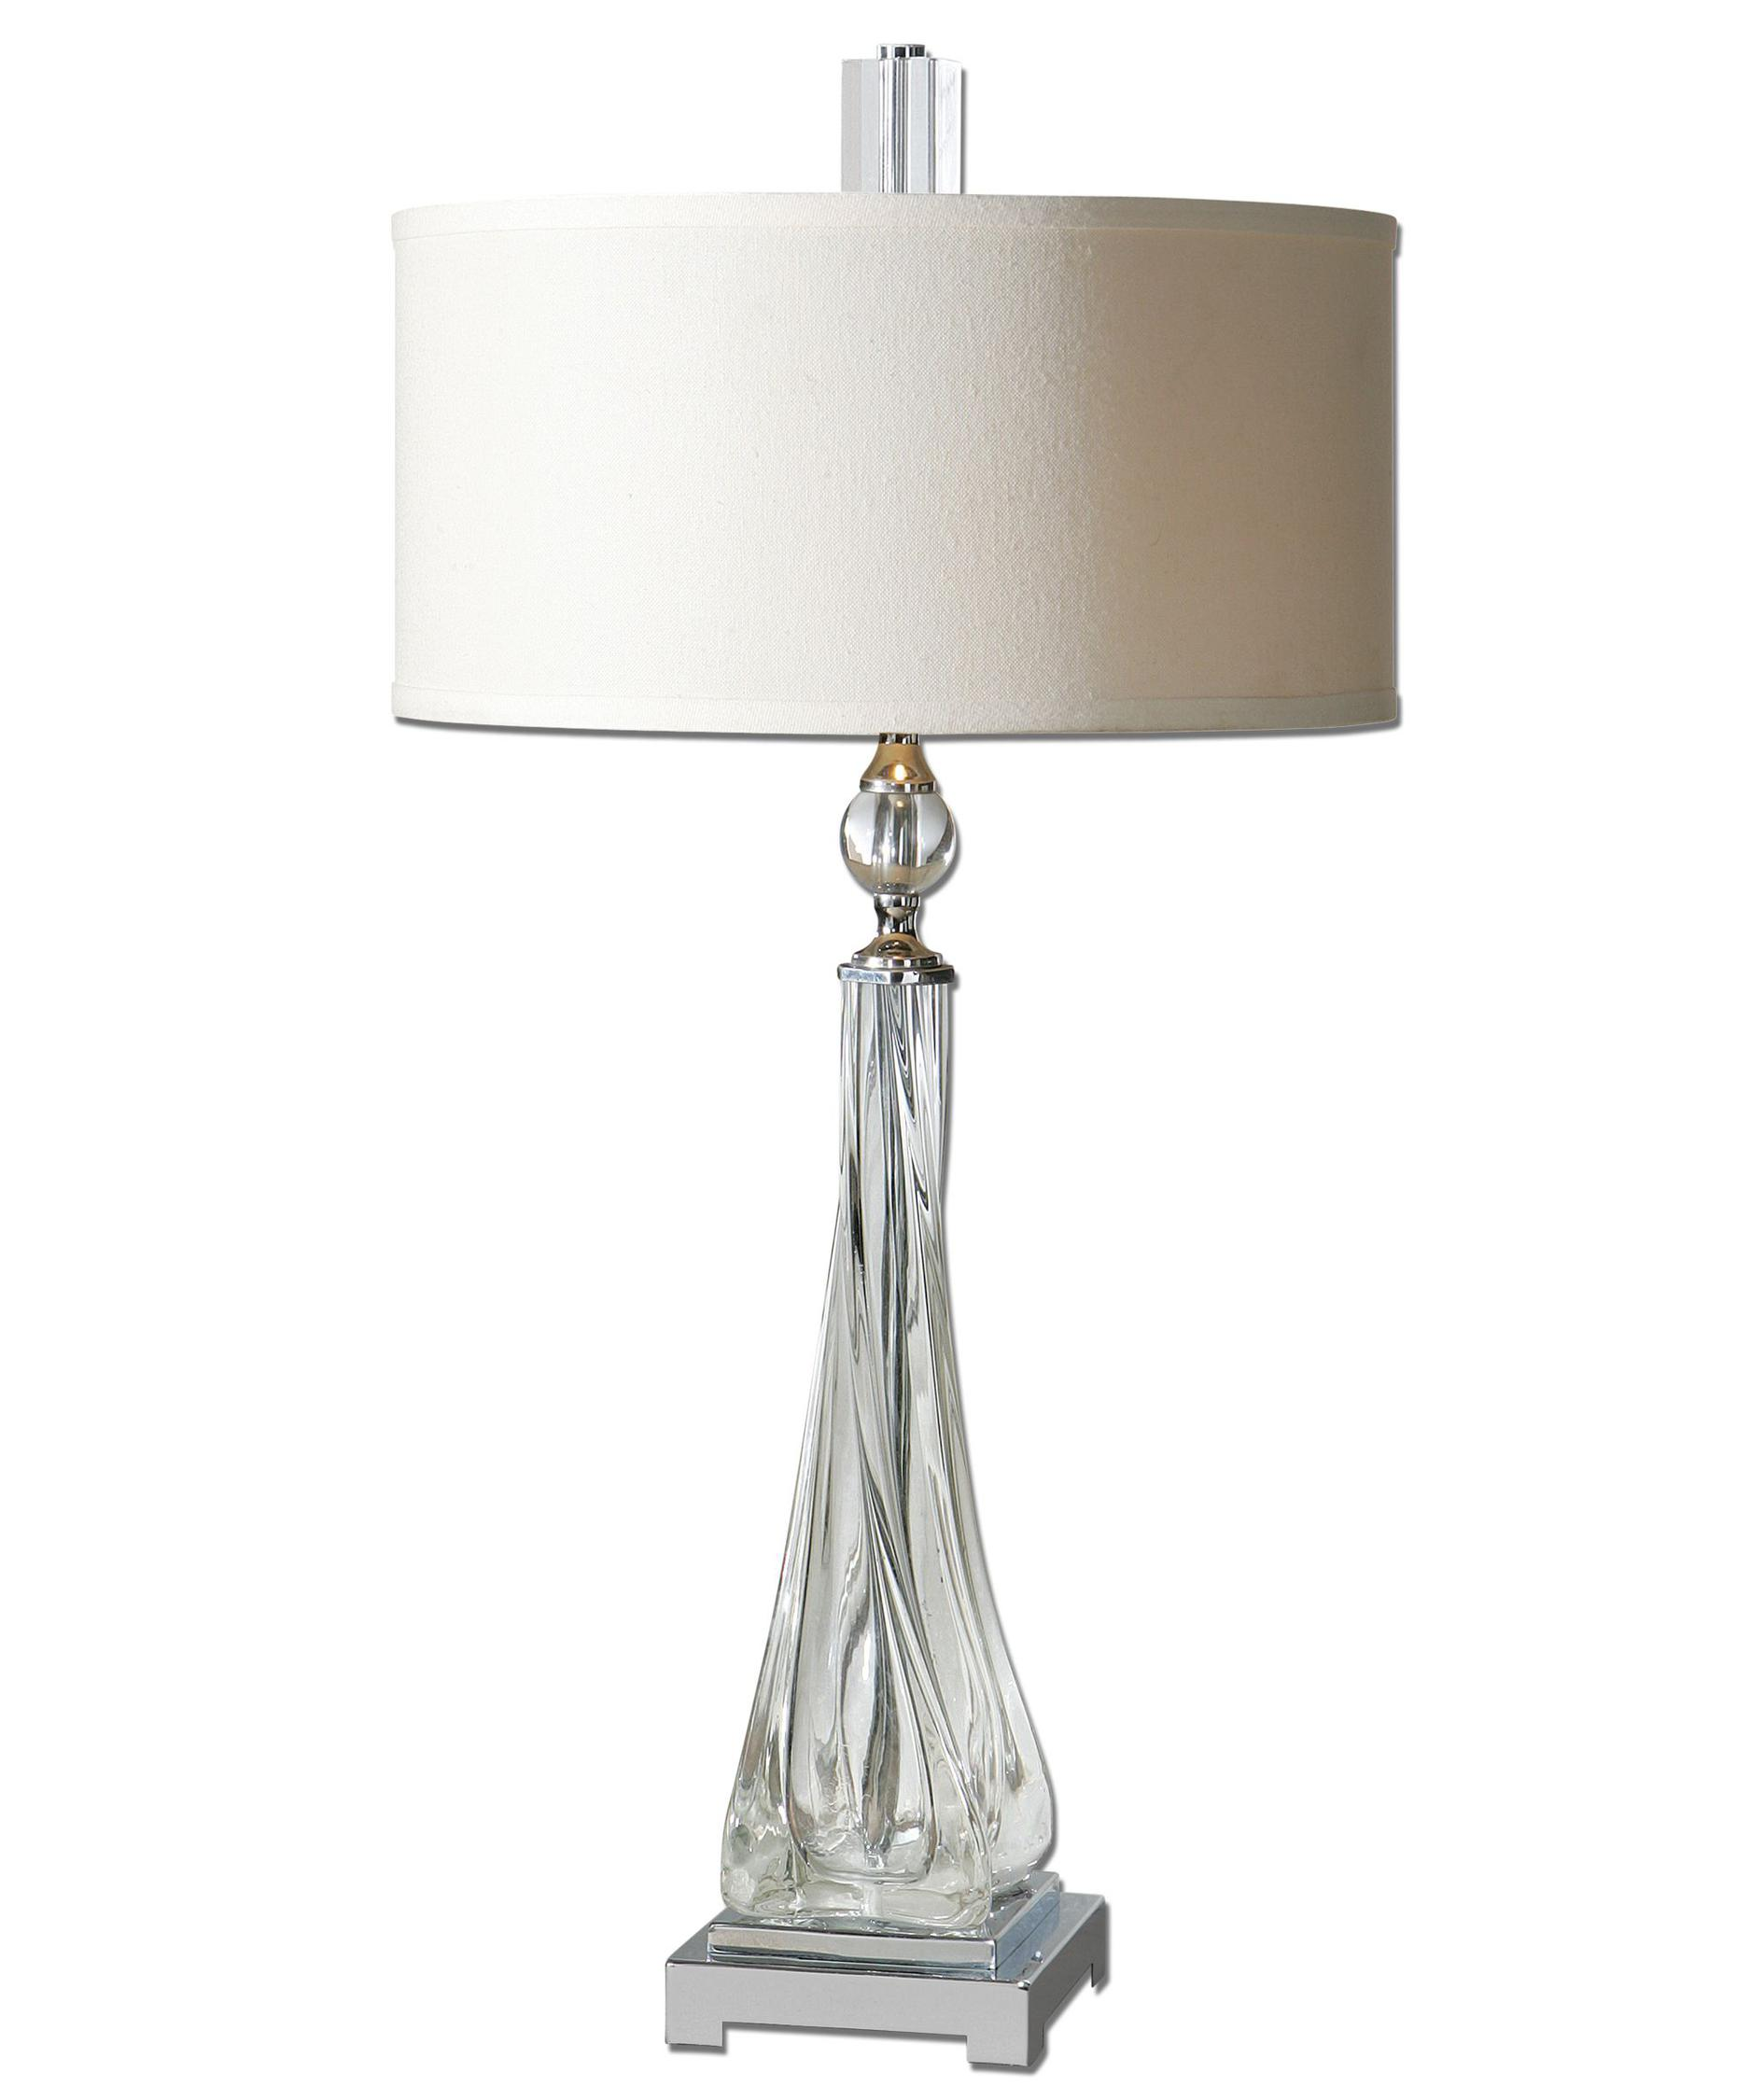 shown in polished nickel finish and round hardback drum shade - Uttermost Lighting